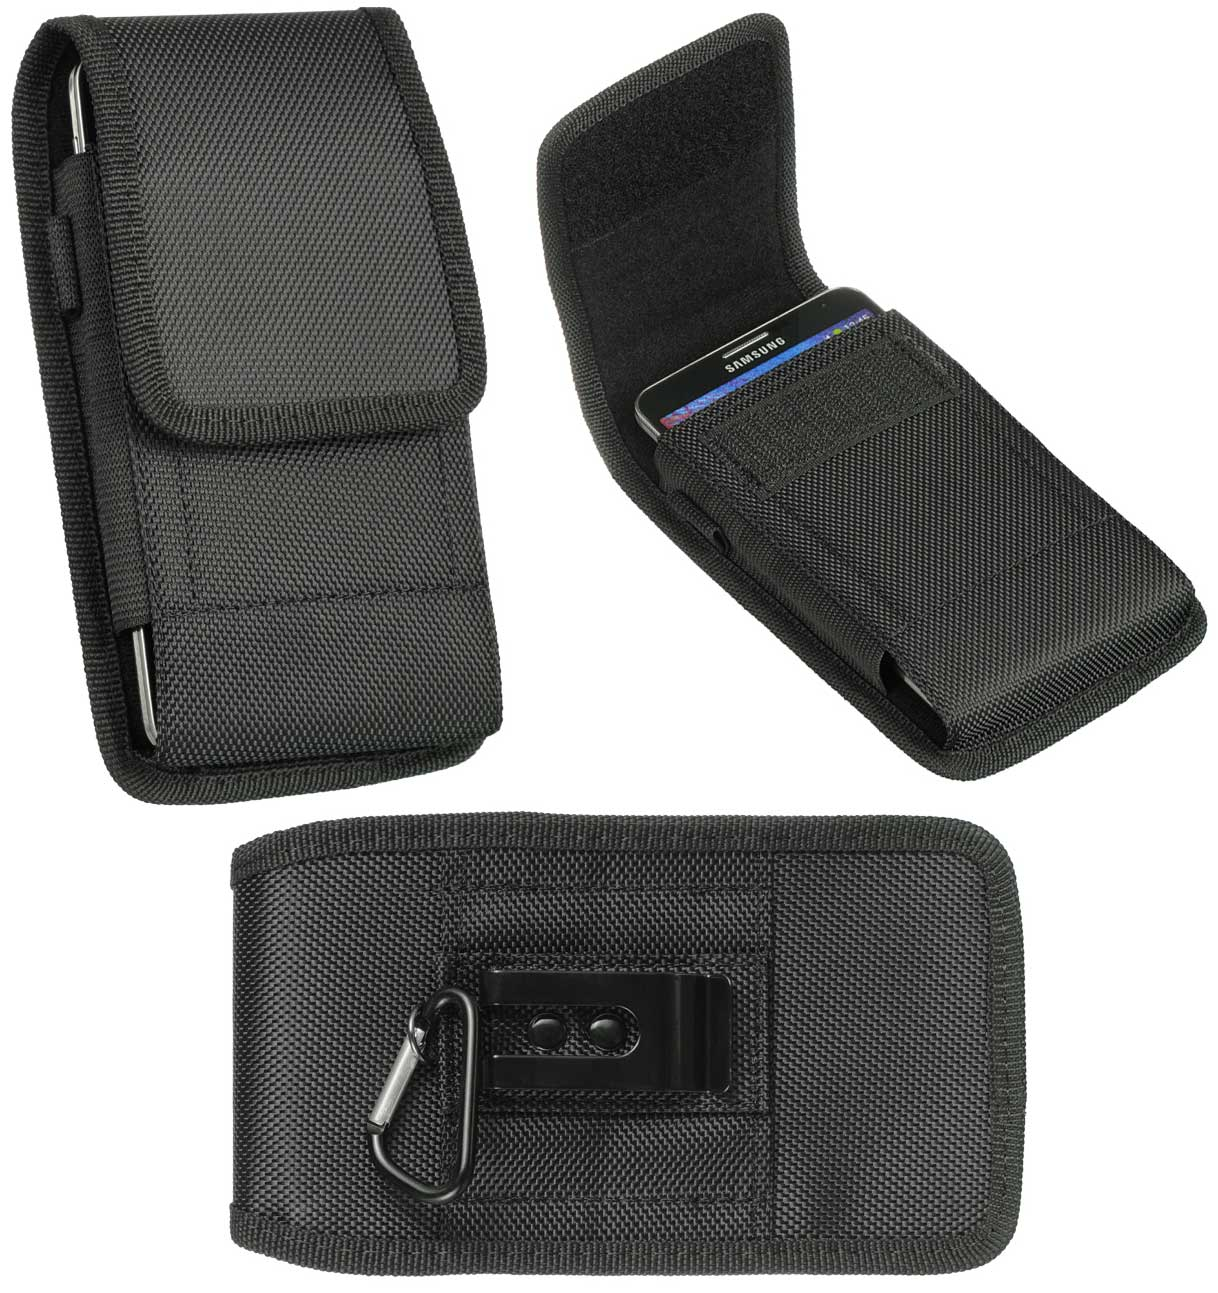 Samsung Galaxy A20 Neoprene Nylon Case Pouch Clip Hook Black